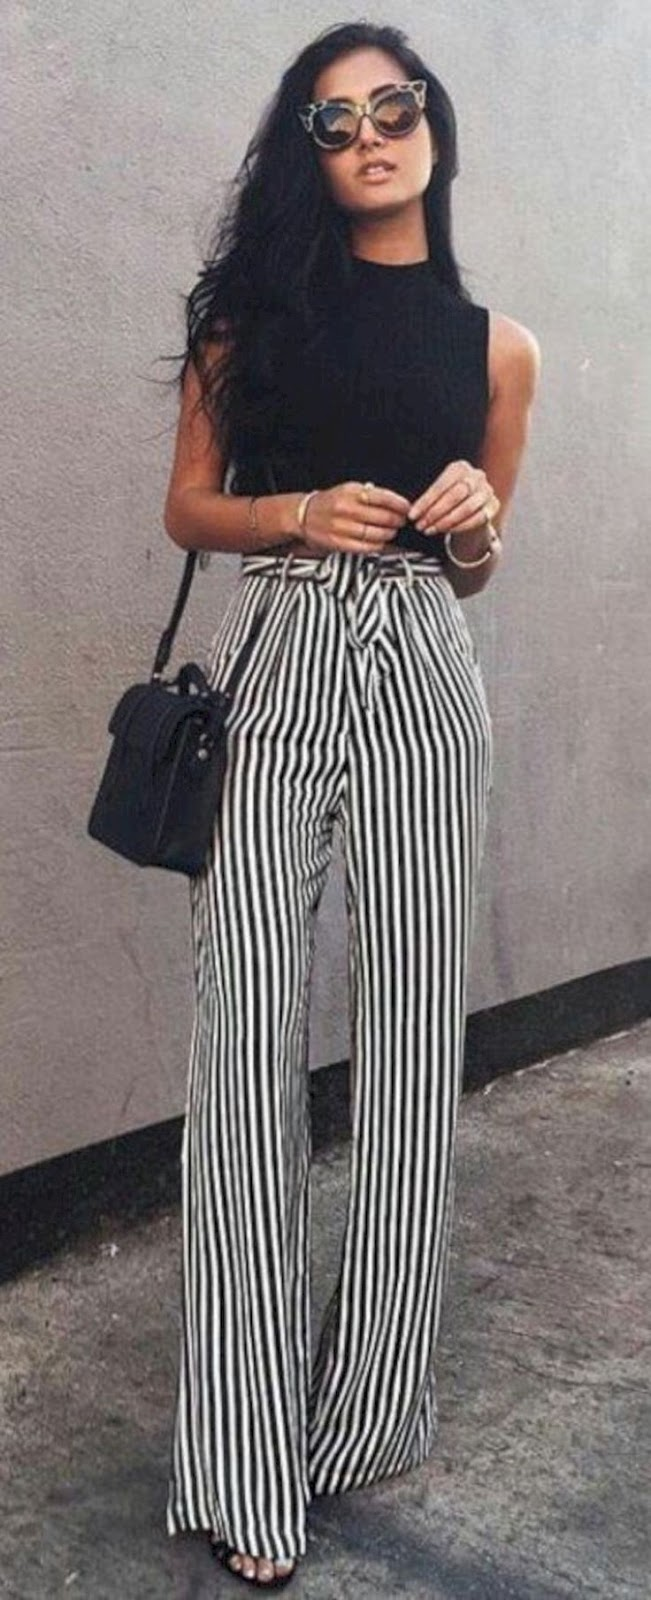 black and white outfit idea / top + wide striped pants + bag